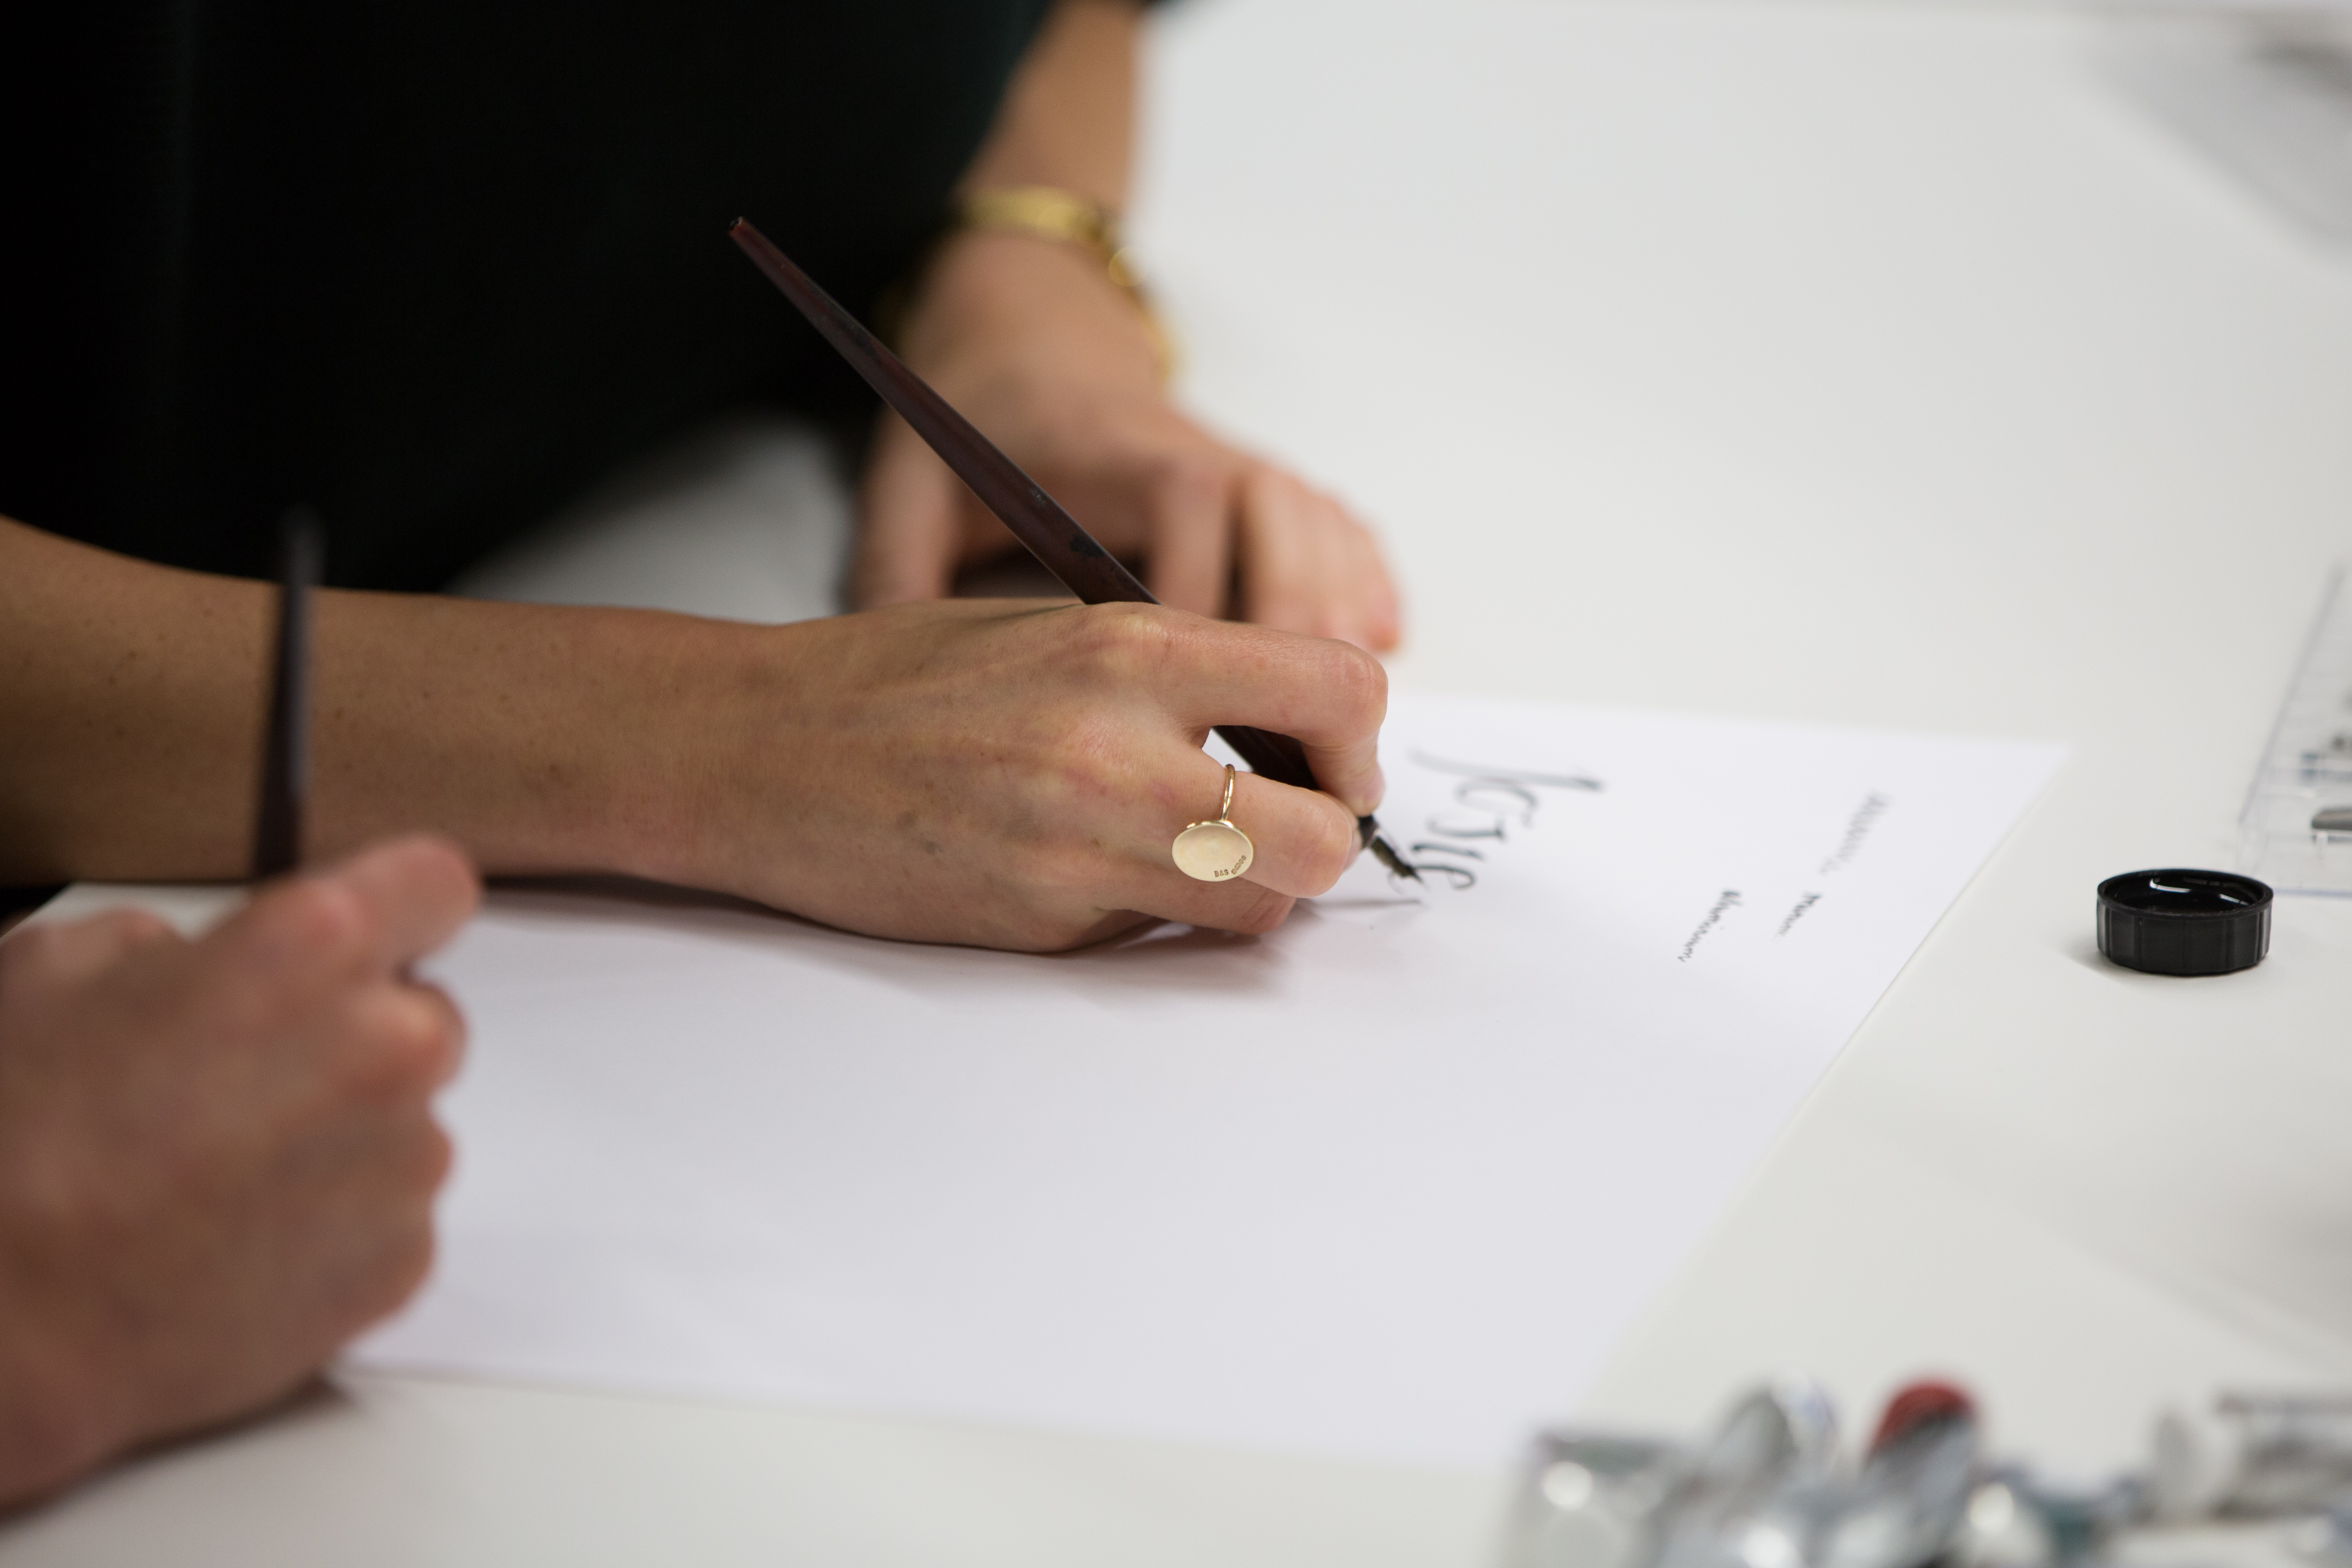 A pair of hands holding a calligraphy pen making black calligraphic letters on a white piece of paper